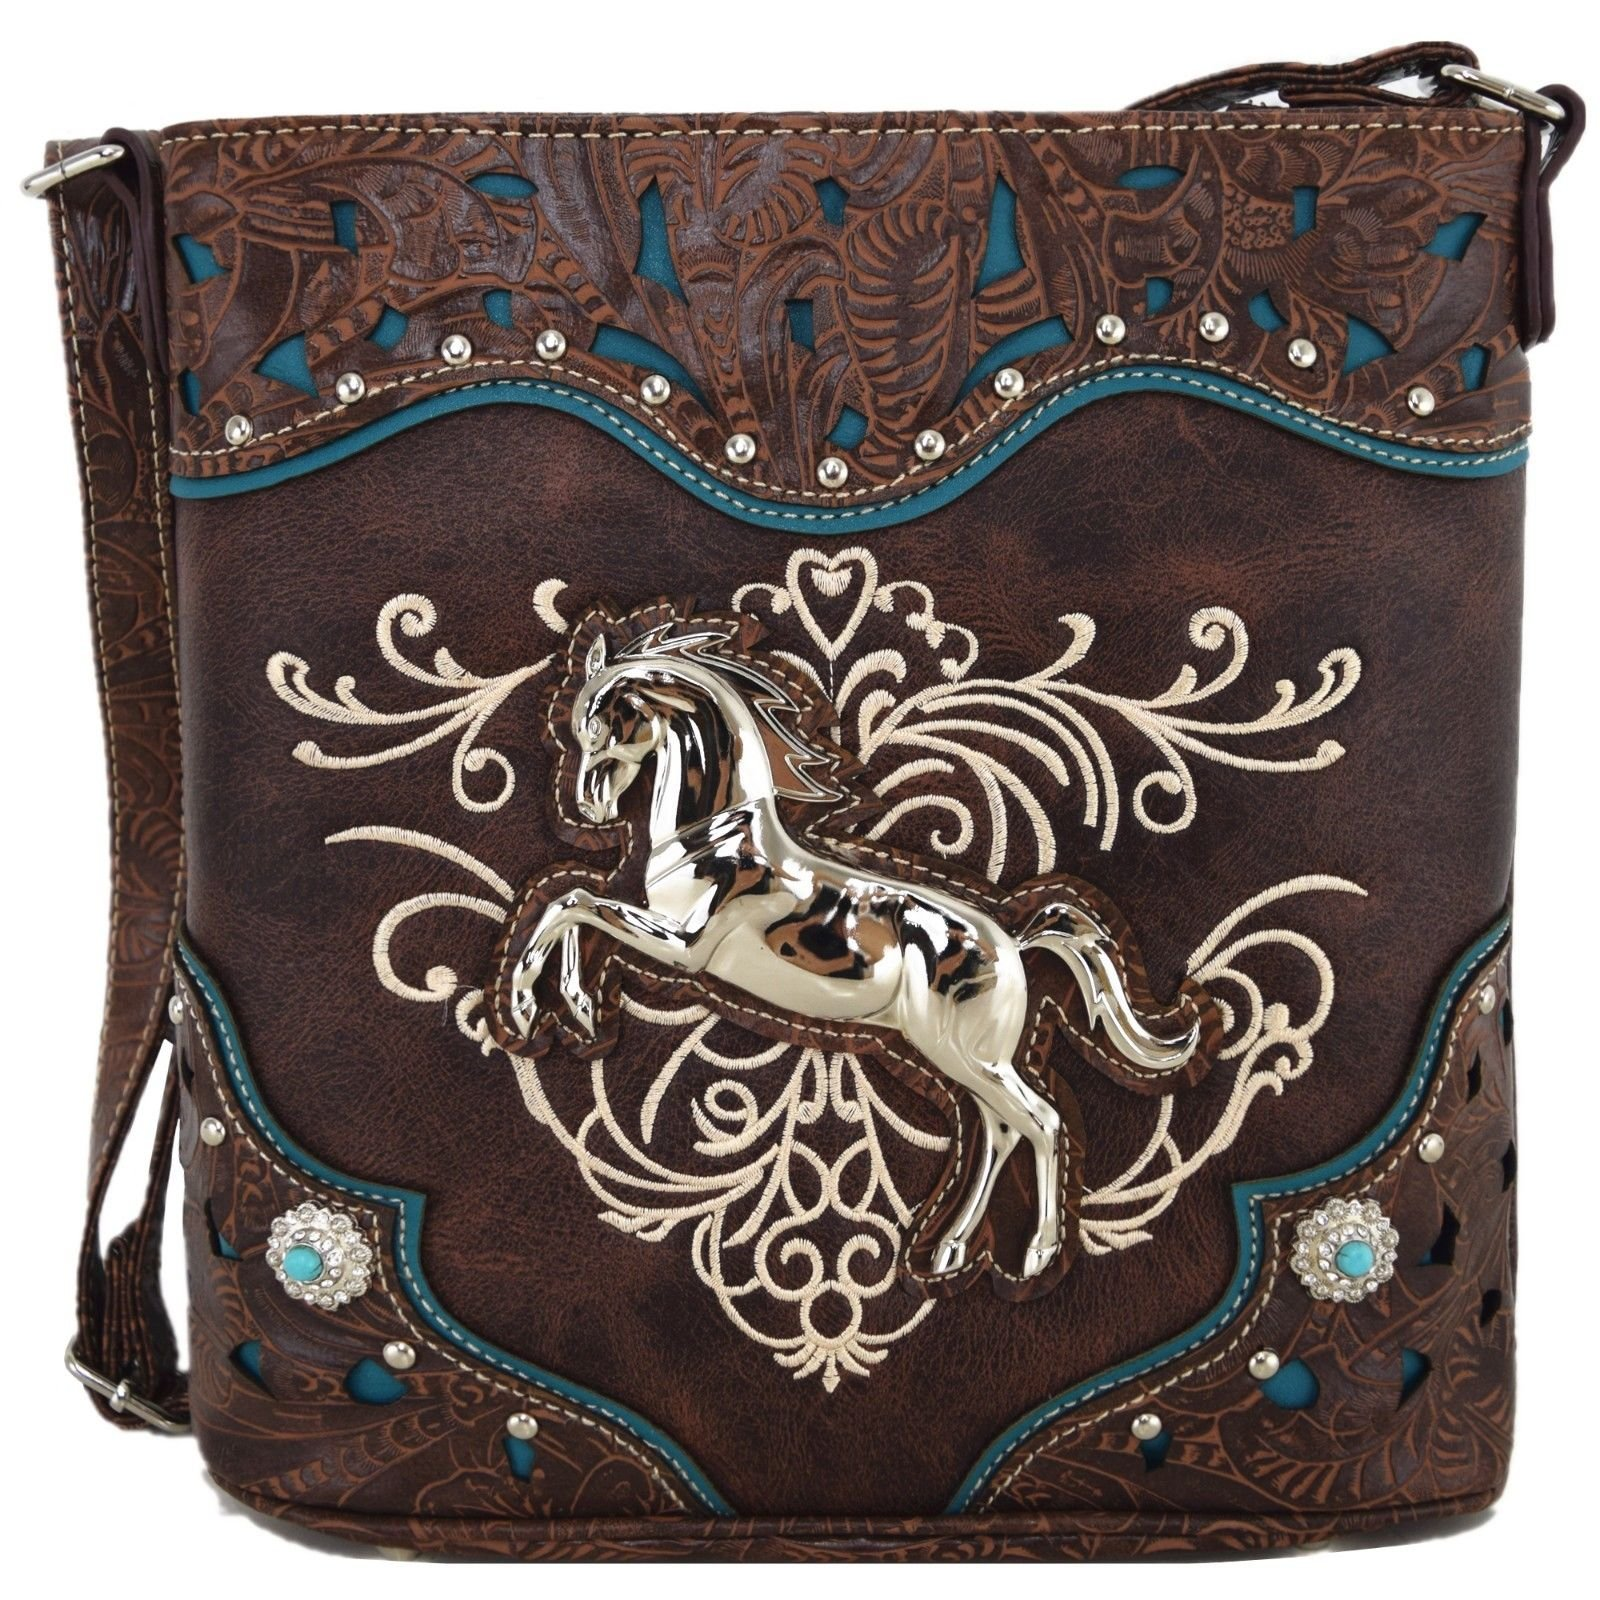 Western Style Horse Small Crossbody Cell Phone Purse Messenger Bags Mini Shoulder Bags (Brown)